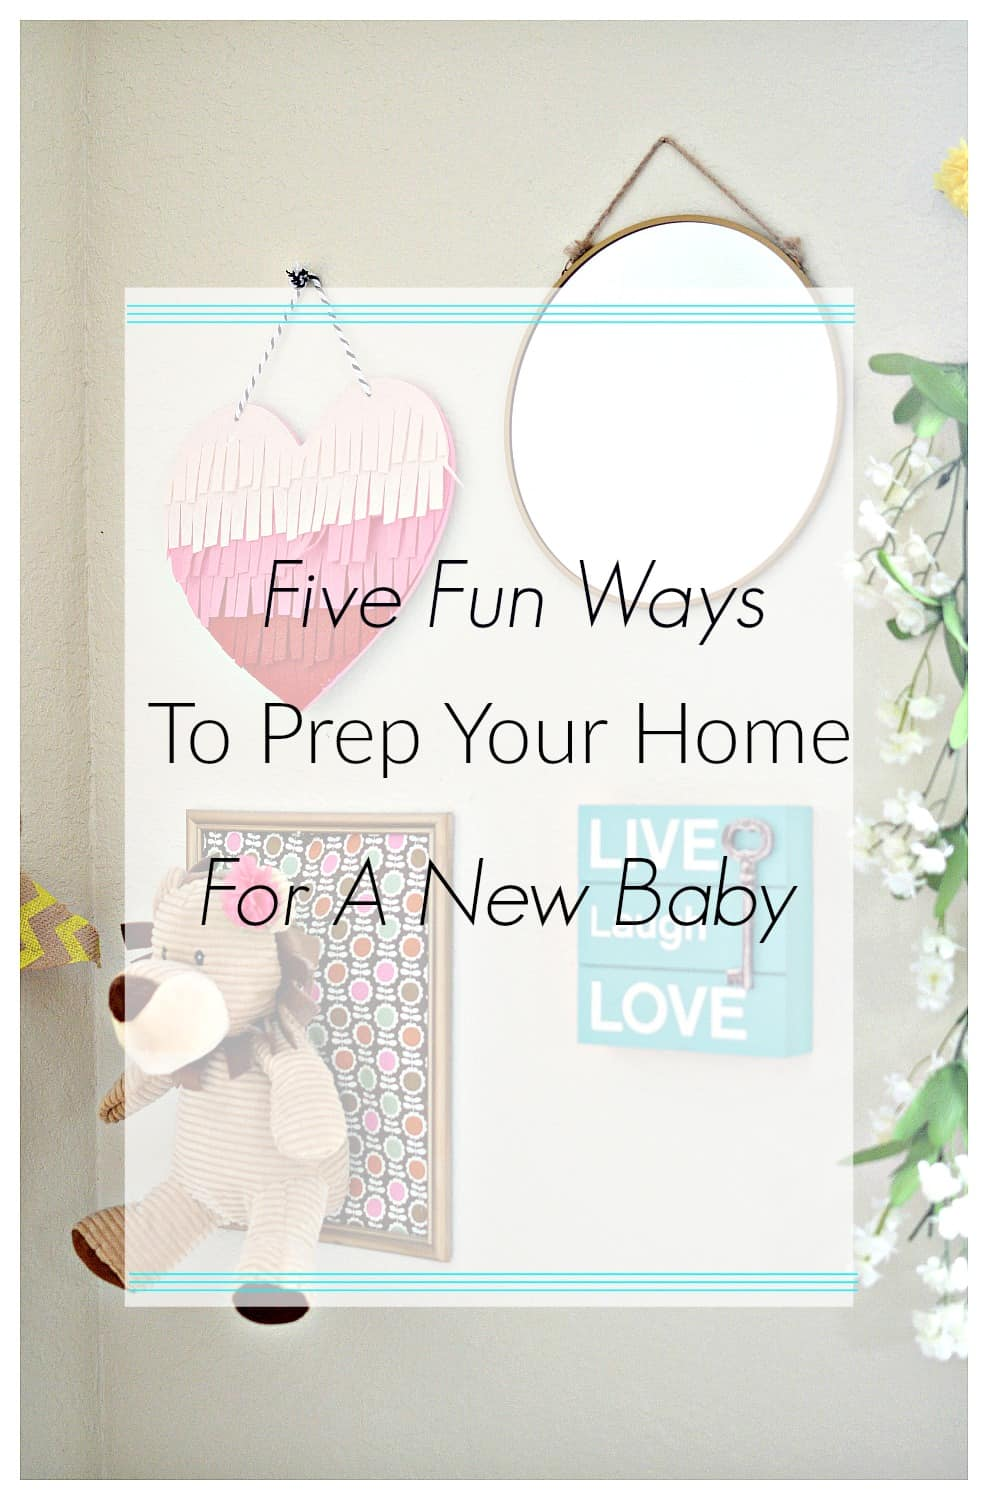 Five Fun Ways To Prep Your Home For A New Baby